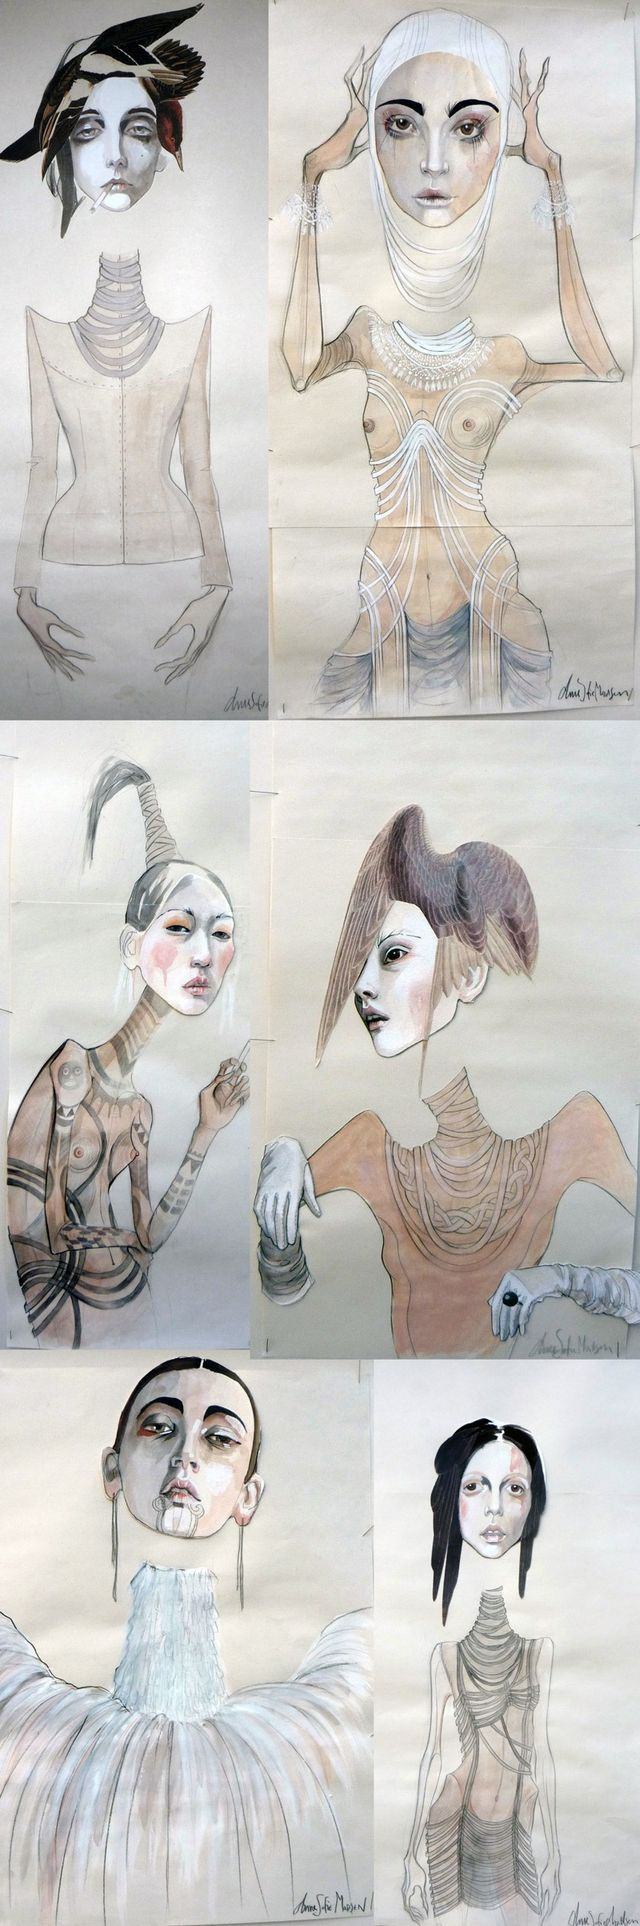 Fashion Sketchbook Drawings - fashion illustrations; concept sketches; fashion design collection development; fashion portfolio // Anne Sofie Madsen